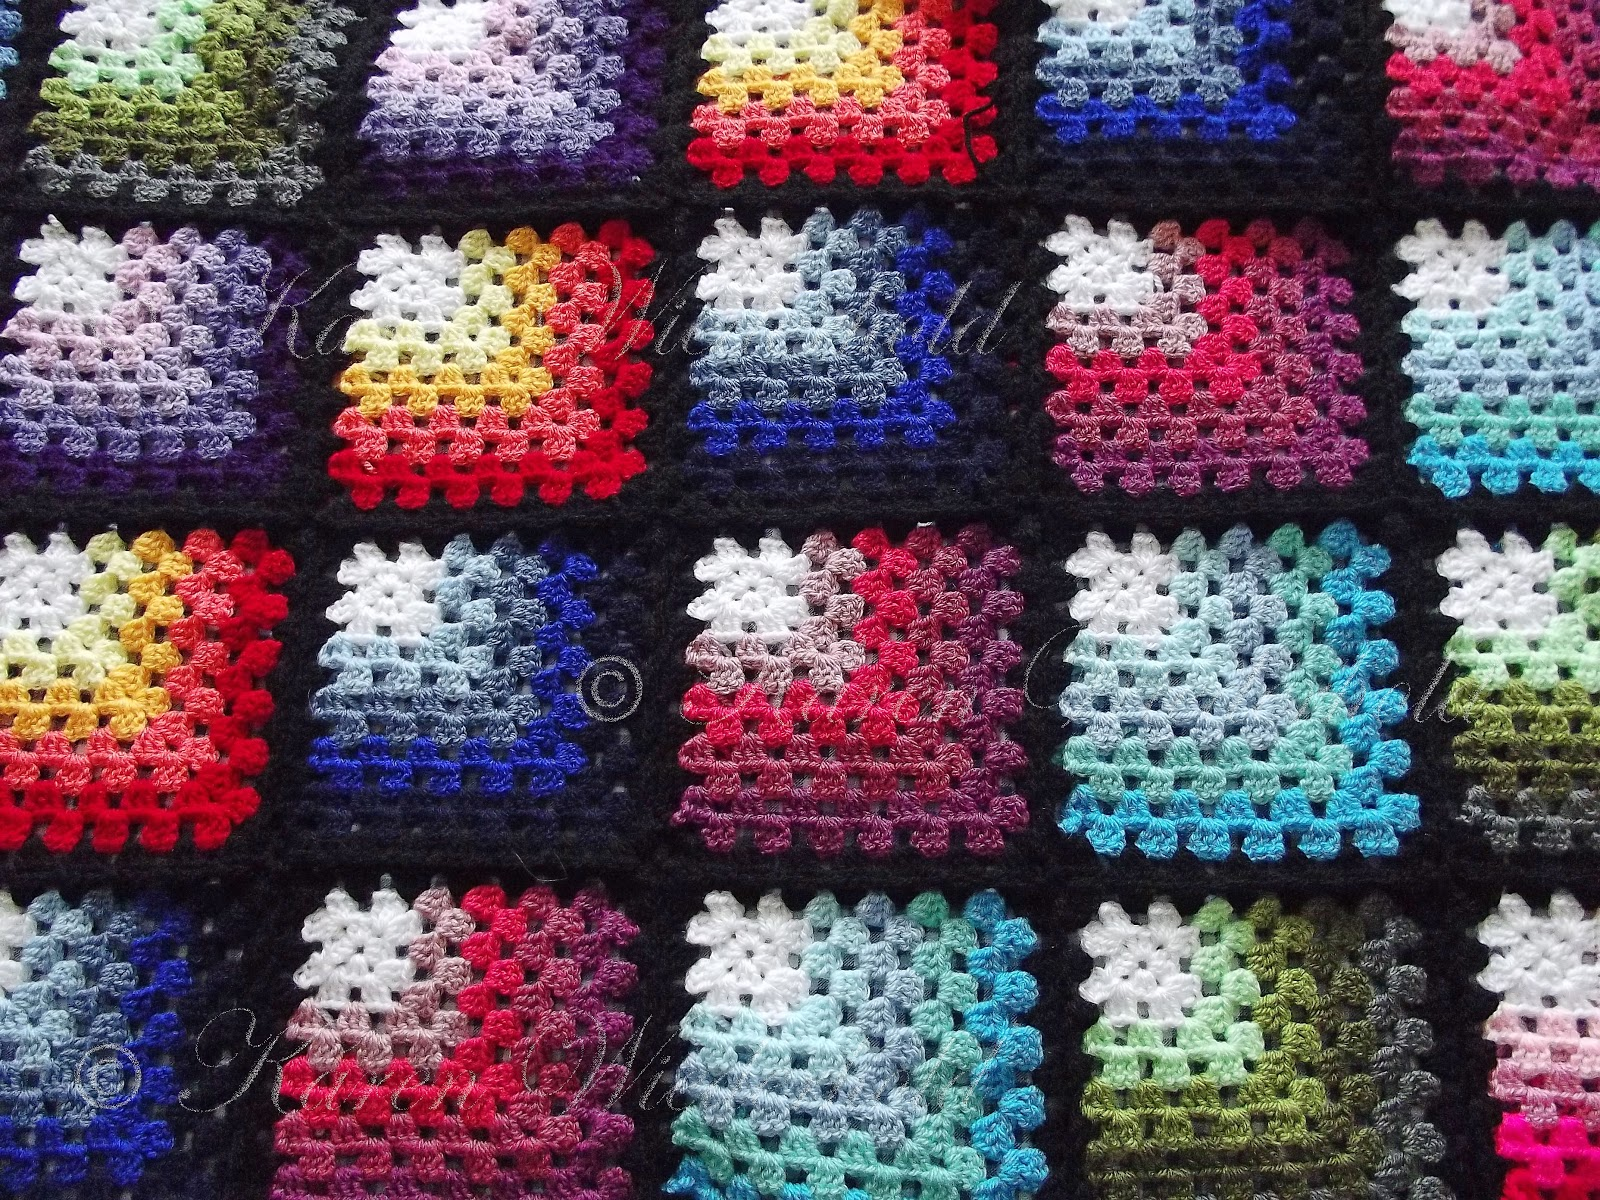 Crochet Granny Square Pattern : ... Granny Square Blanket - Free Crochet Pattern - Copyright 2013-2015